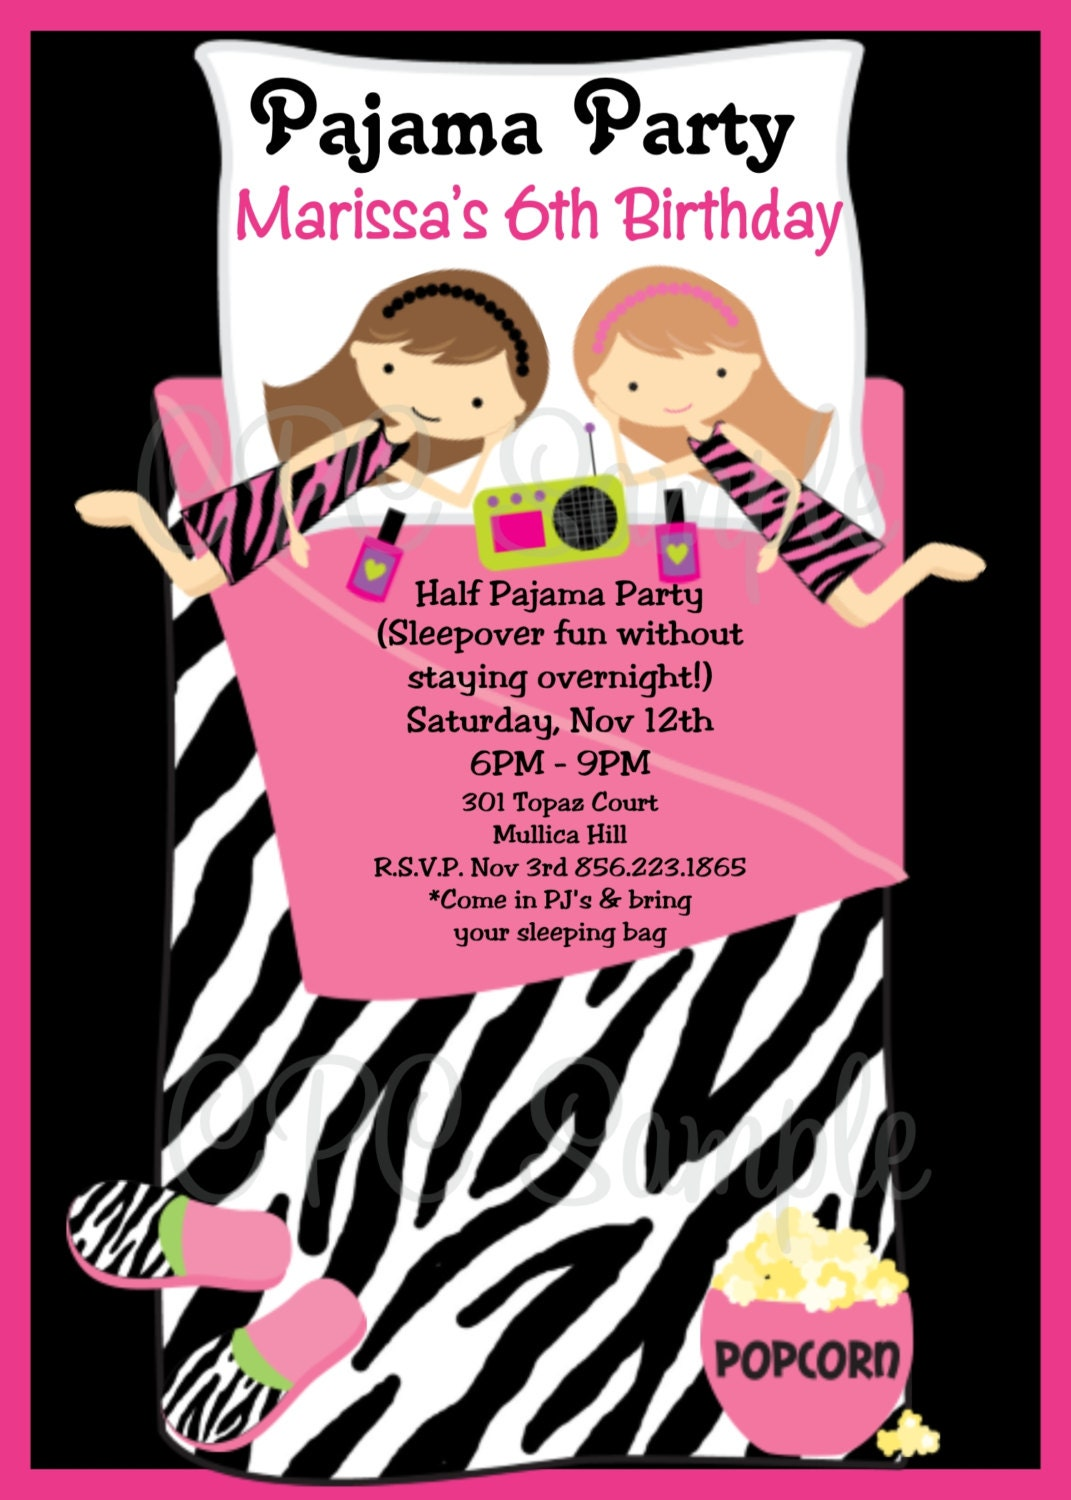 Pajama Party Invitation for your inspiration to make invitation template look beautiful